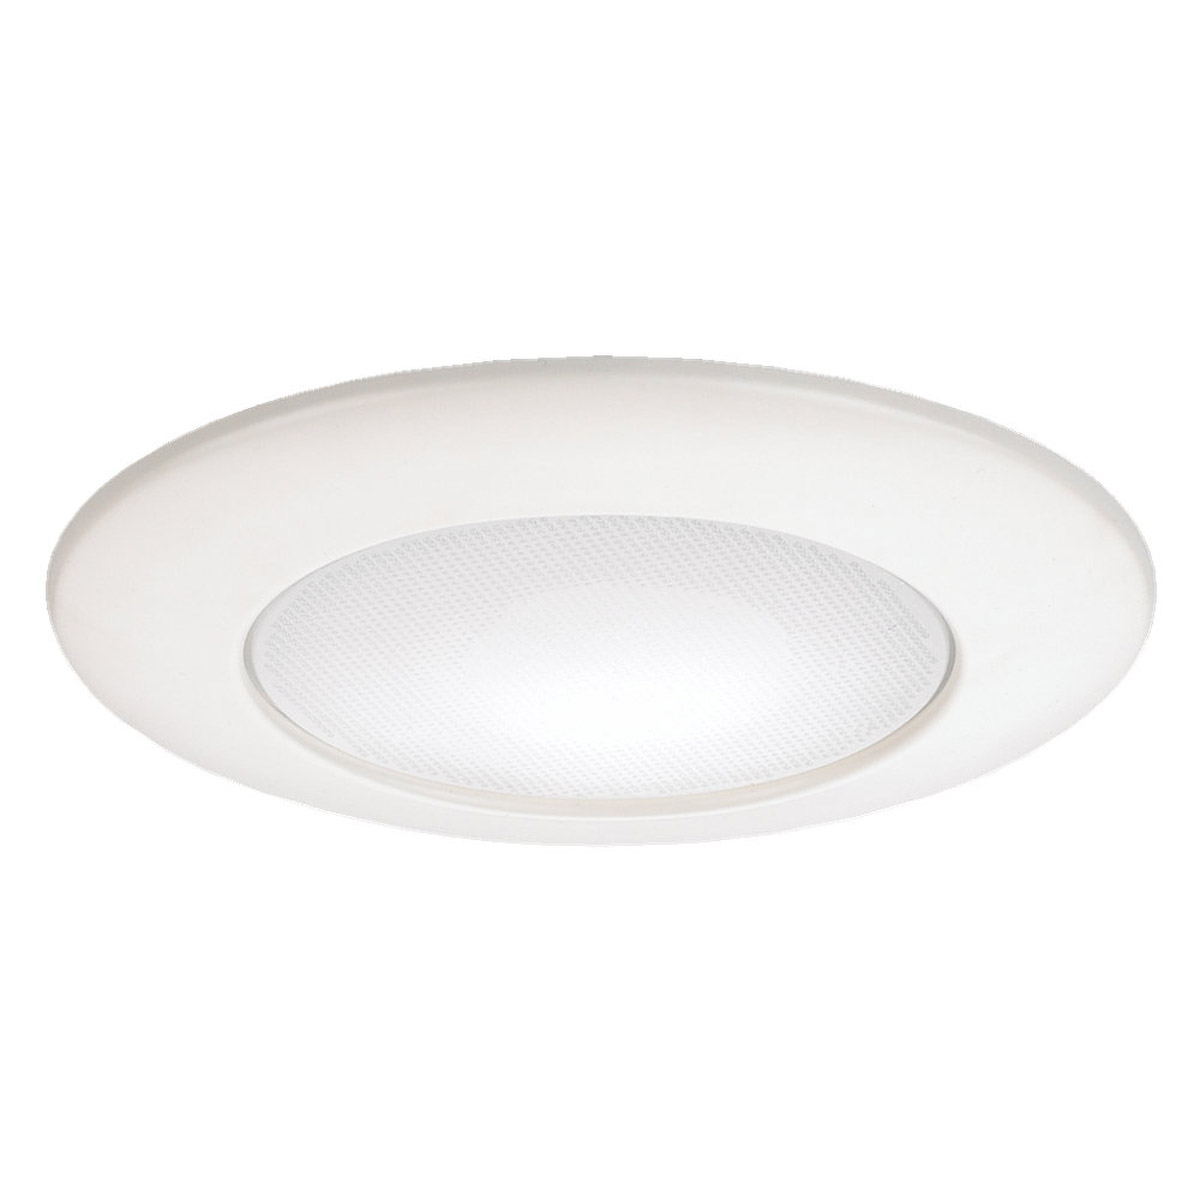 Sea Gull 11235AT-15 Signature White Recessed Trim photo